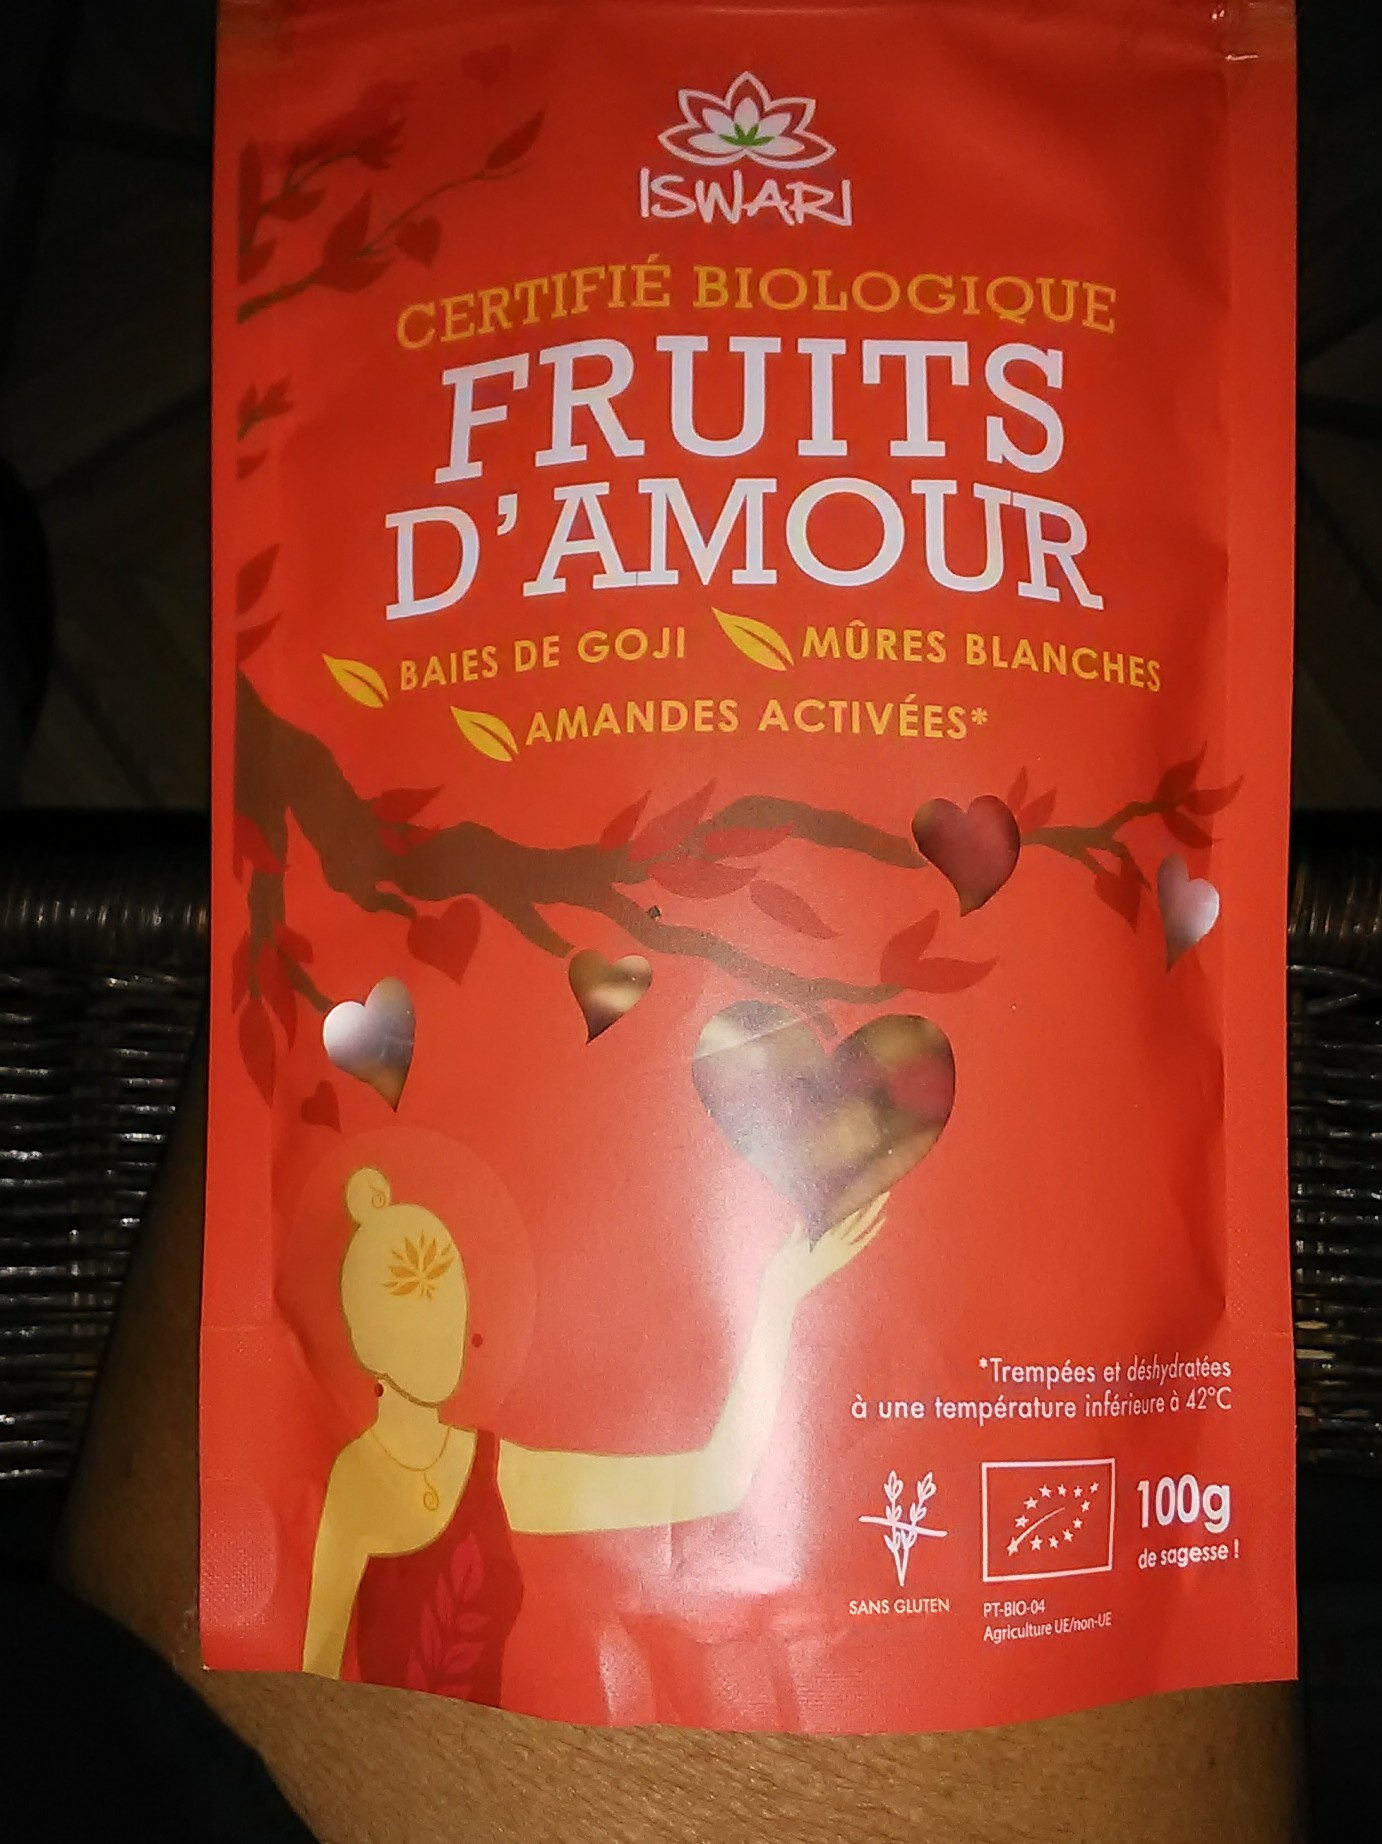 Fruits D'Amour - Goji, Mulberries, Amandes Bio - 100 G - Iswari - Product